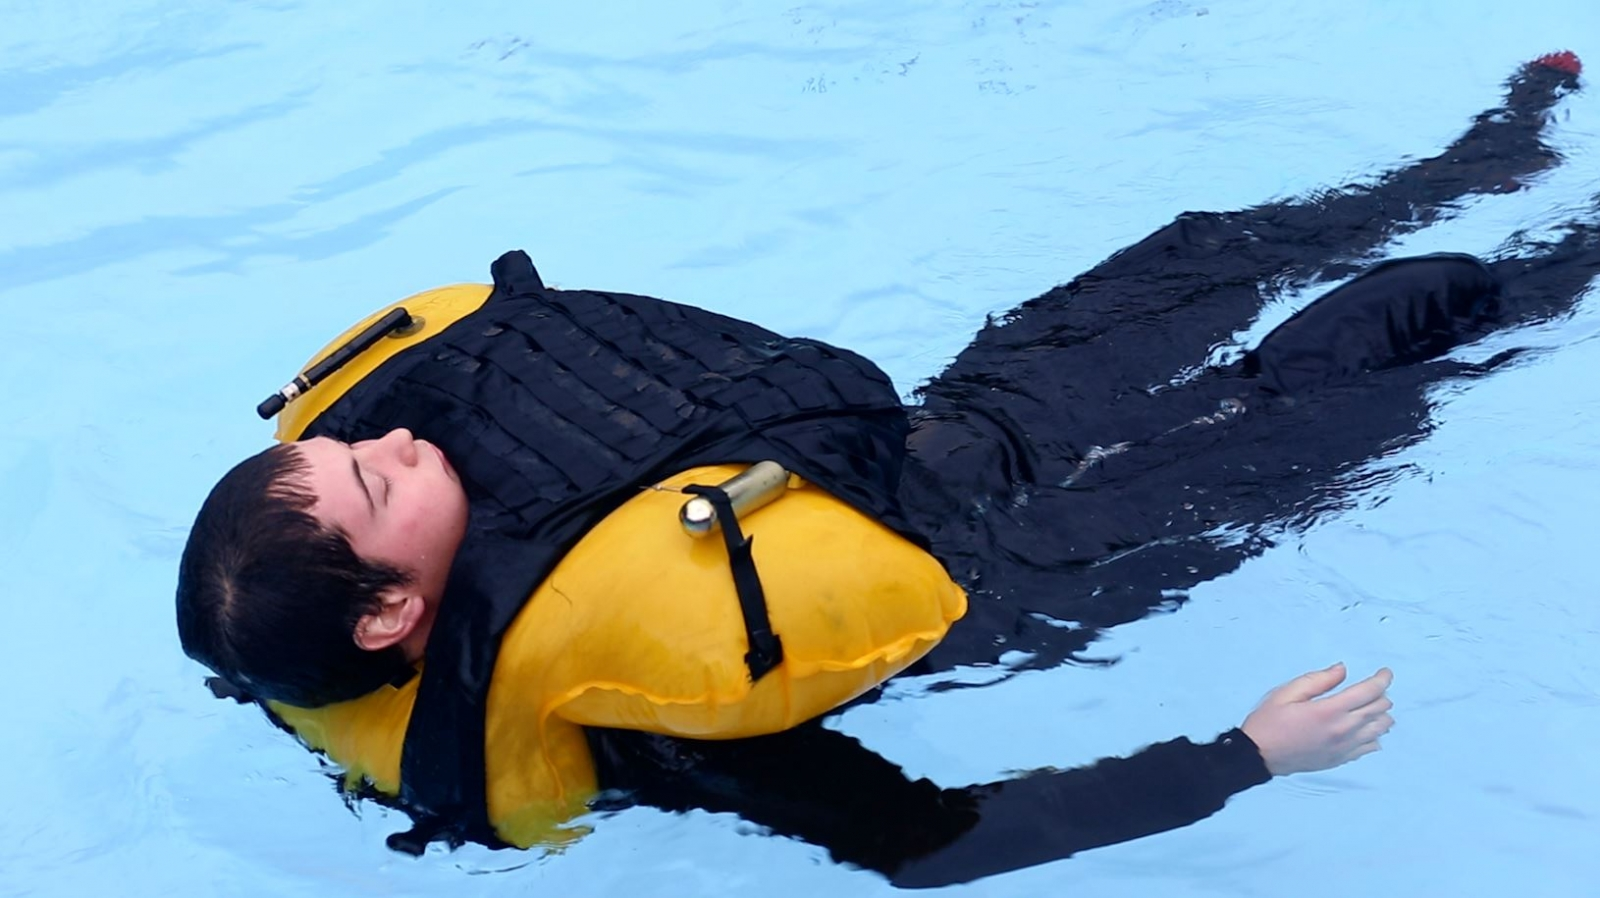 A new type of inflatable body armour protects soldiers who fall into the water and makes sure they can float and breathe